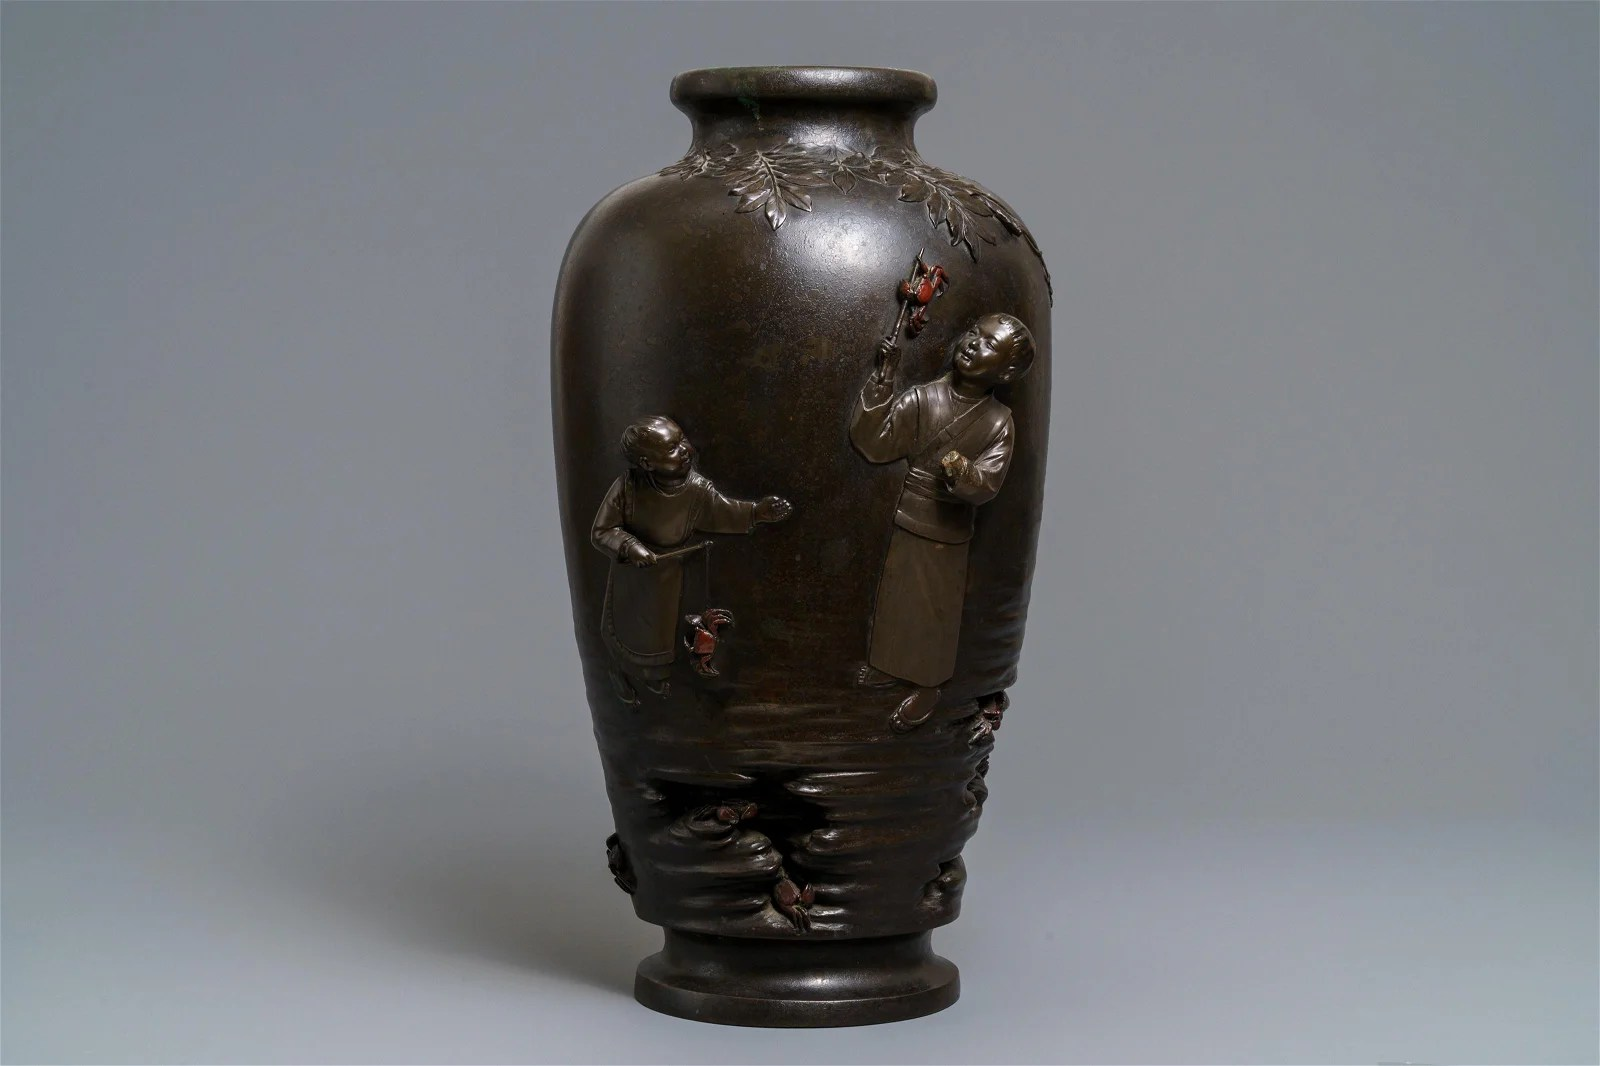 A large Japanese bronze vase with crab-fishing